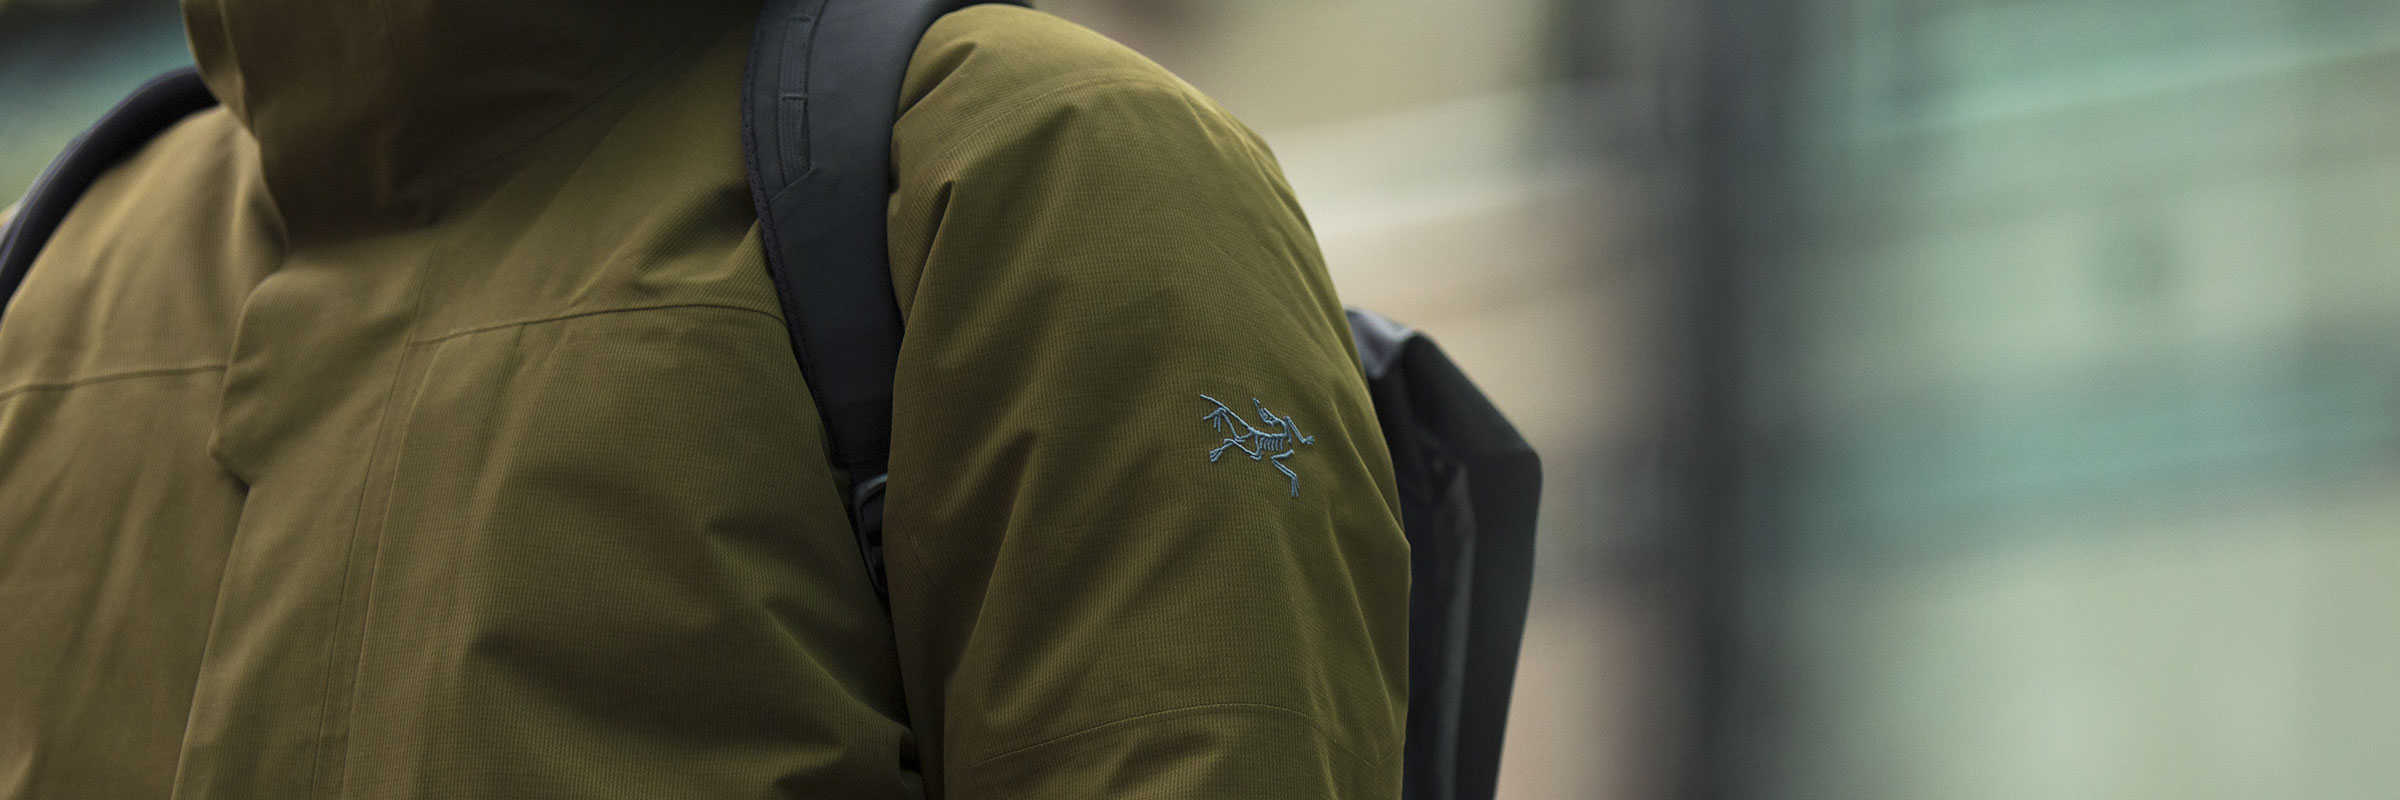 arcteryx mens urban winter coats